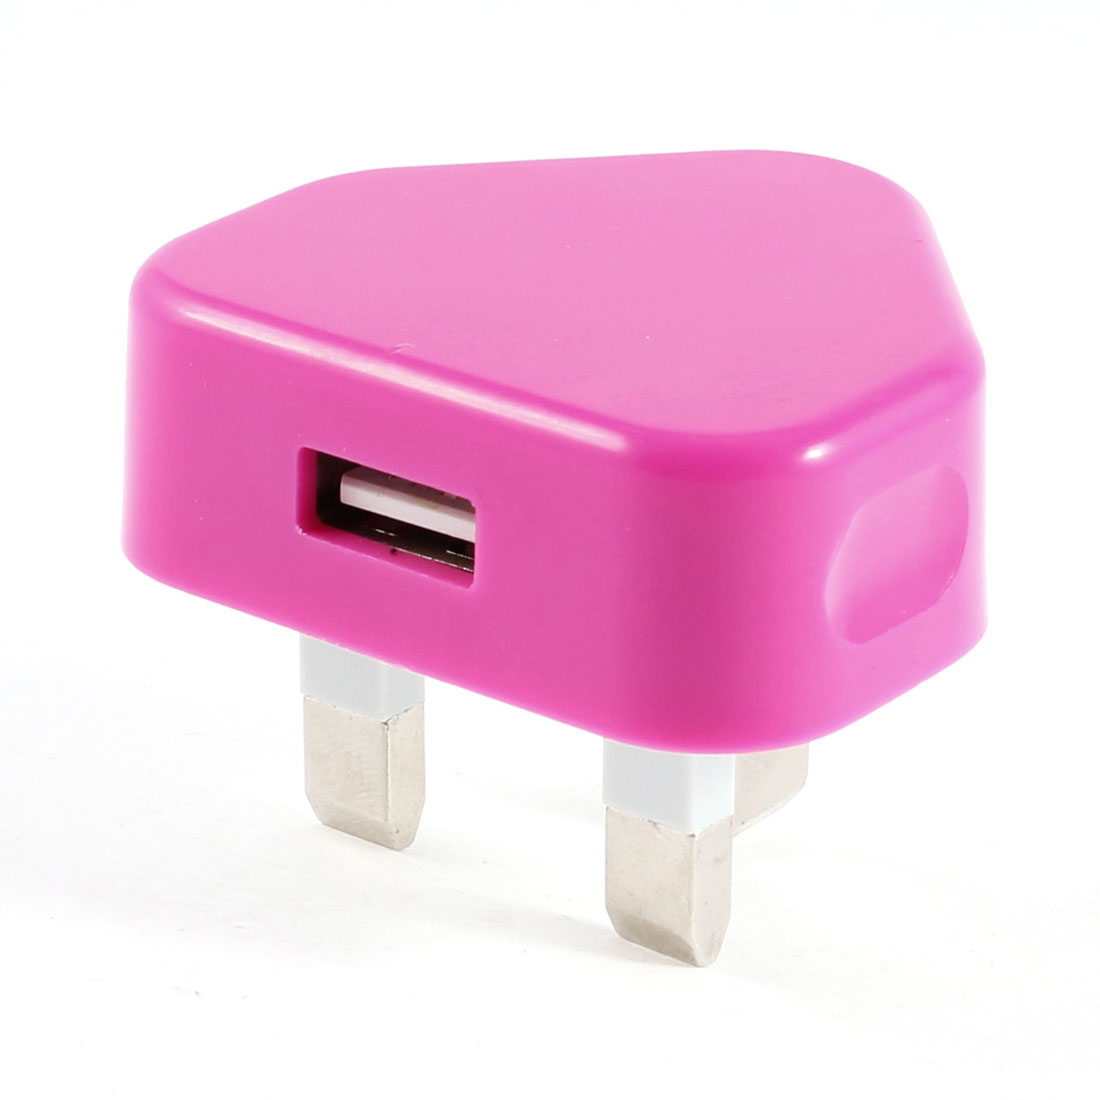 100-240V USB UK Plug Wall AC Power Adapter Connector Fuchsia for Cell Phone